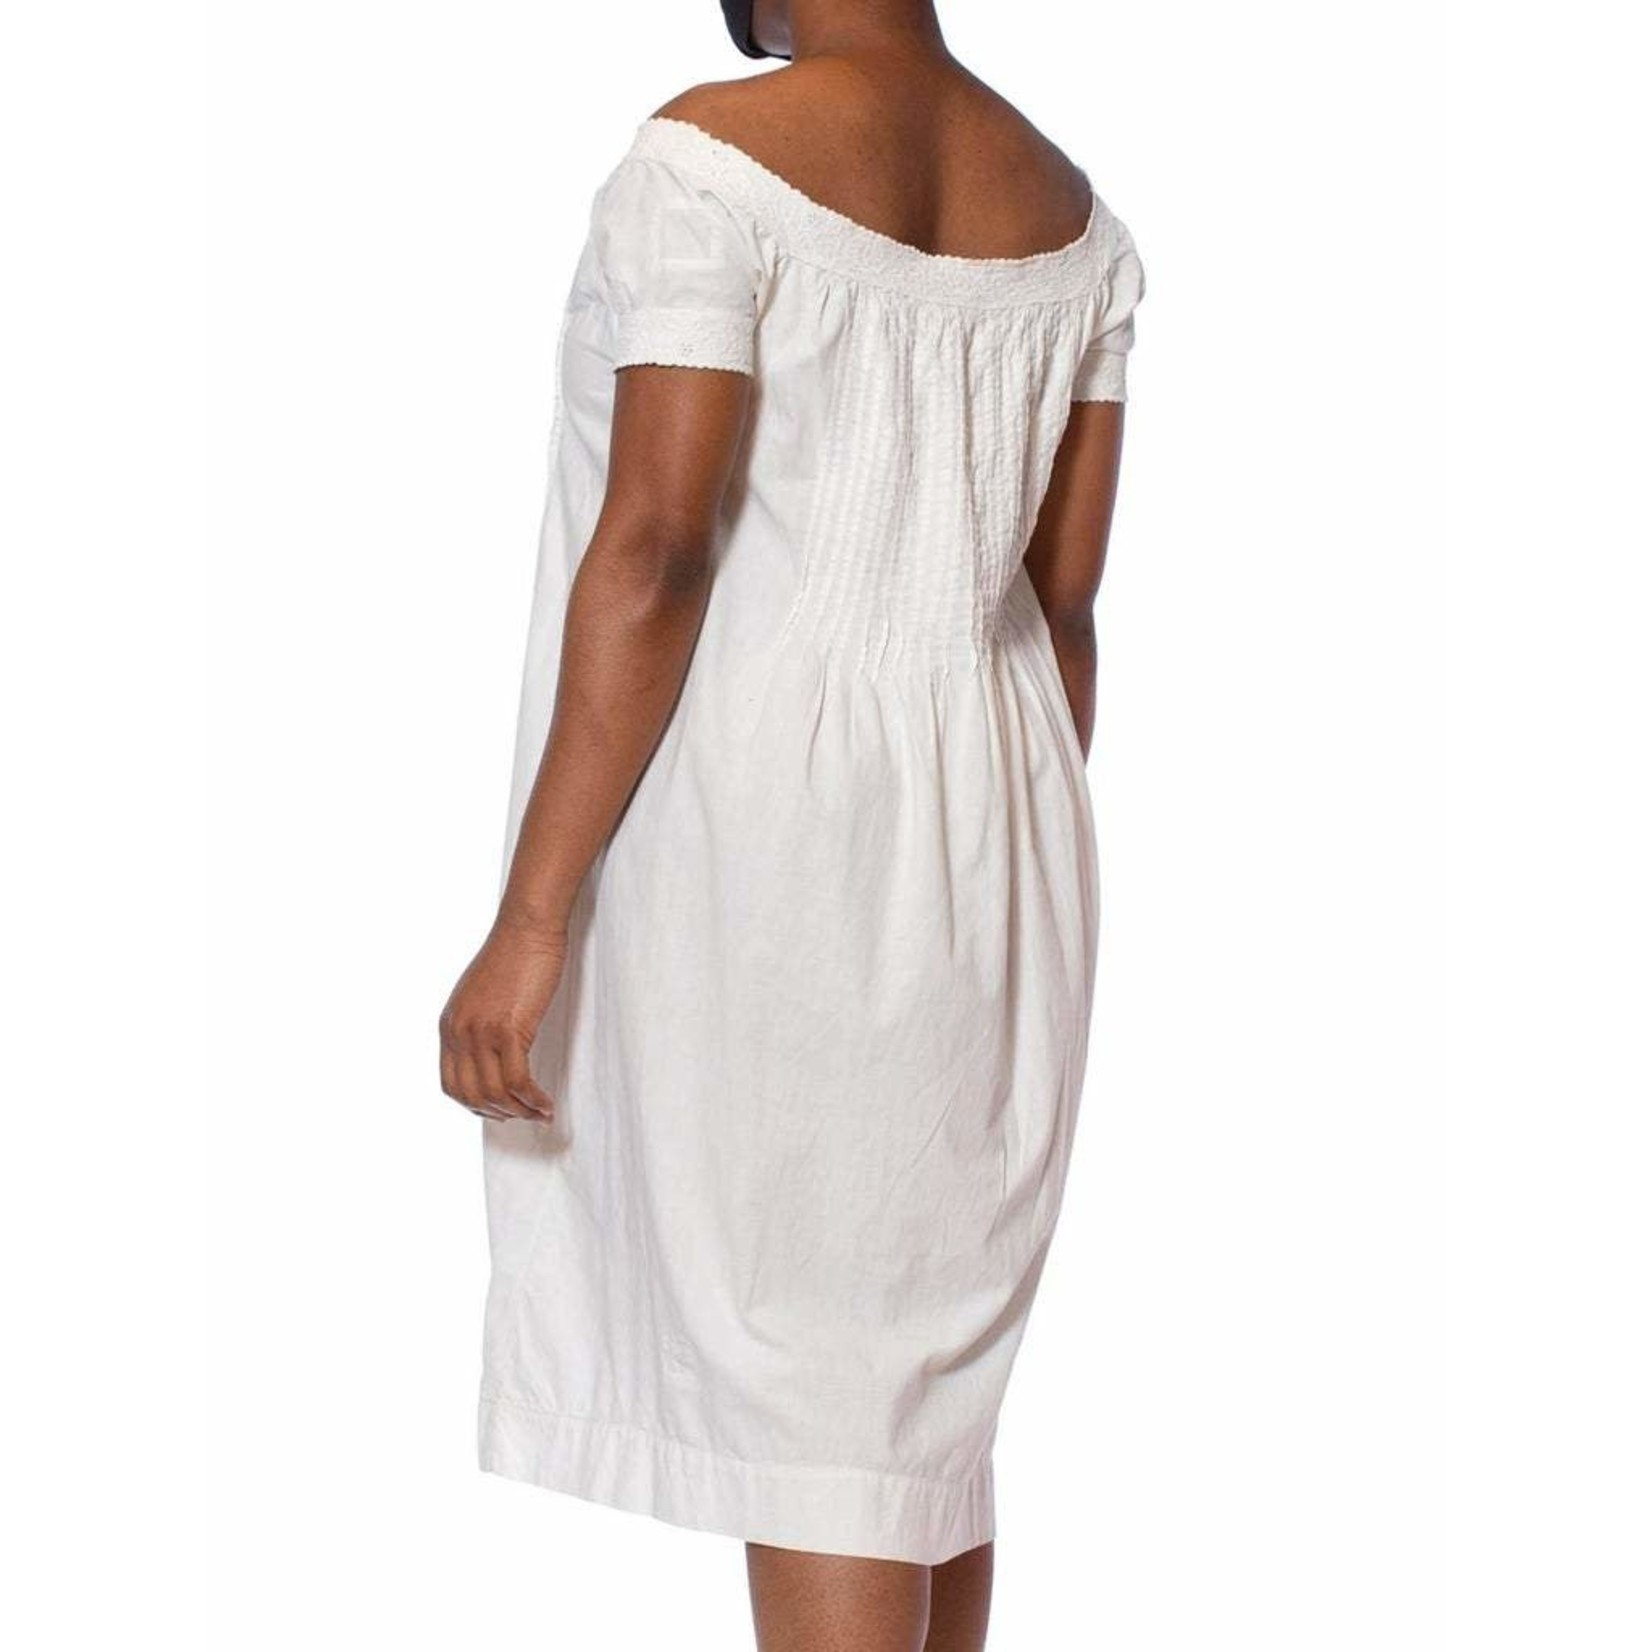 Wyld Blue Vintage Victorian White Hand Embroidered Organic Cotton 1860s Chemise Dress